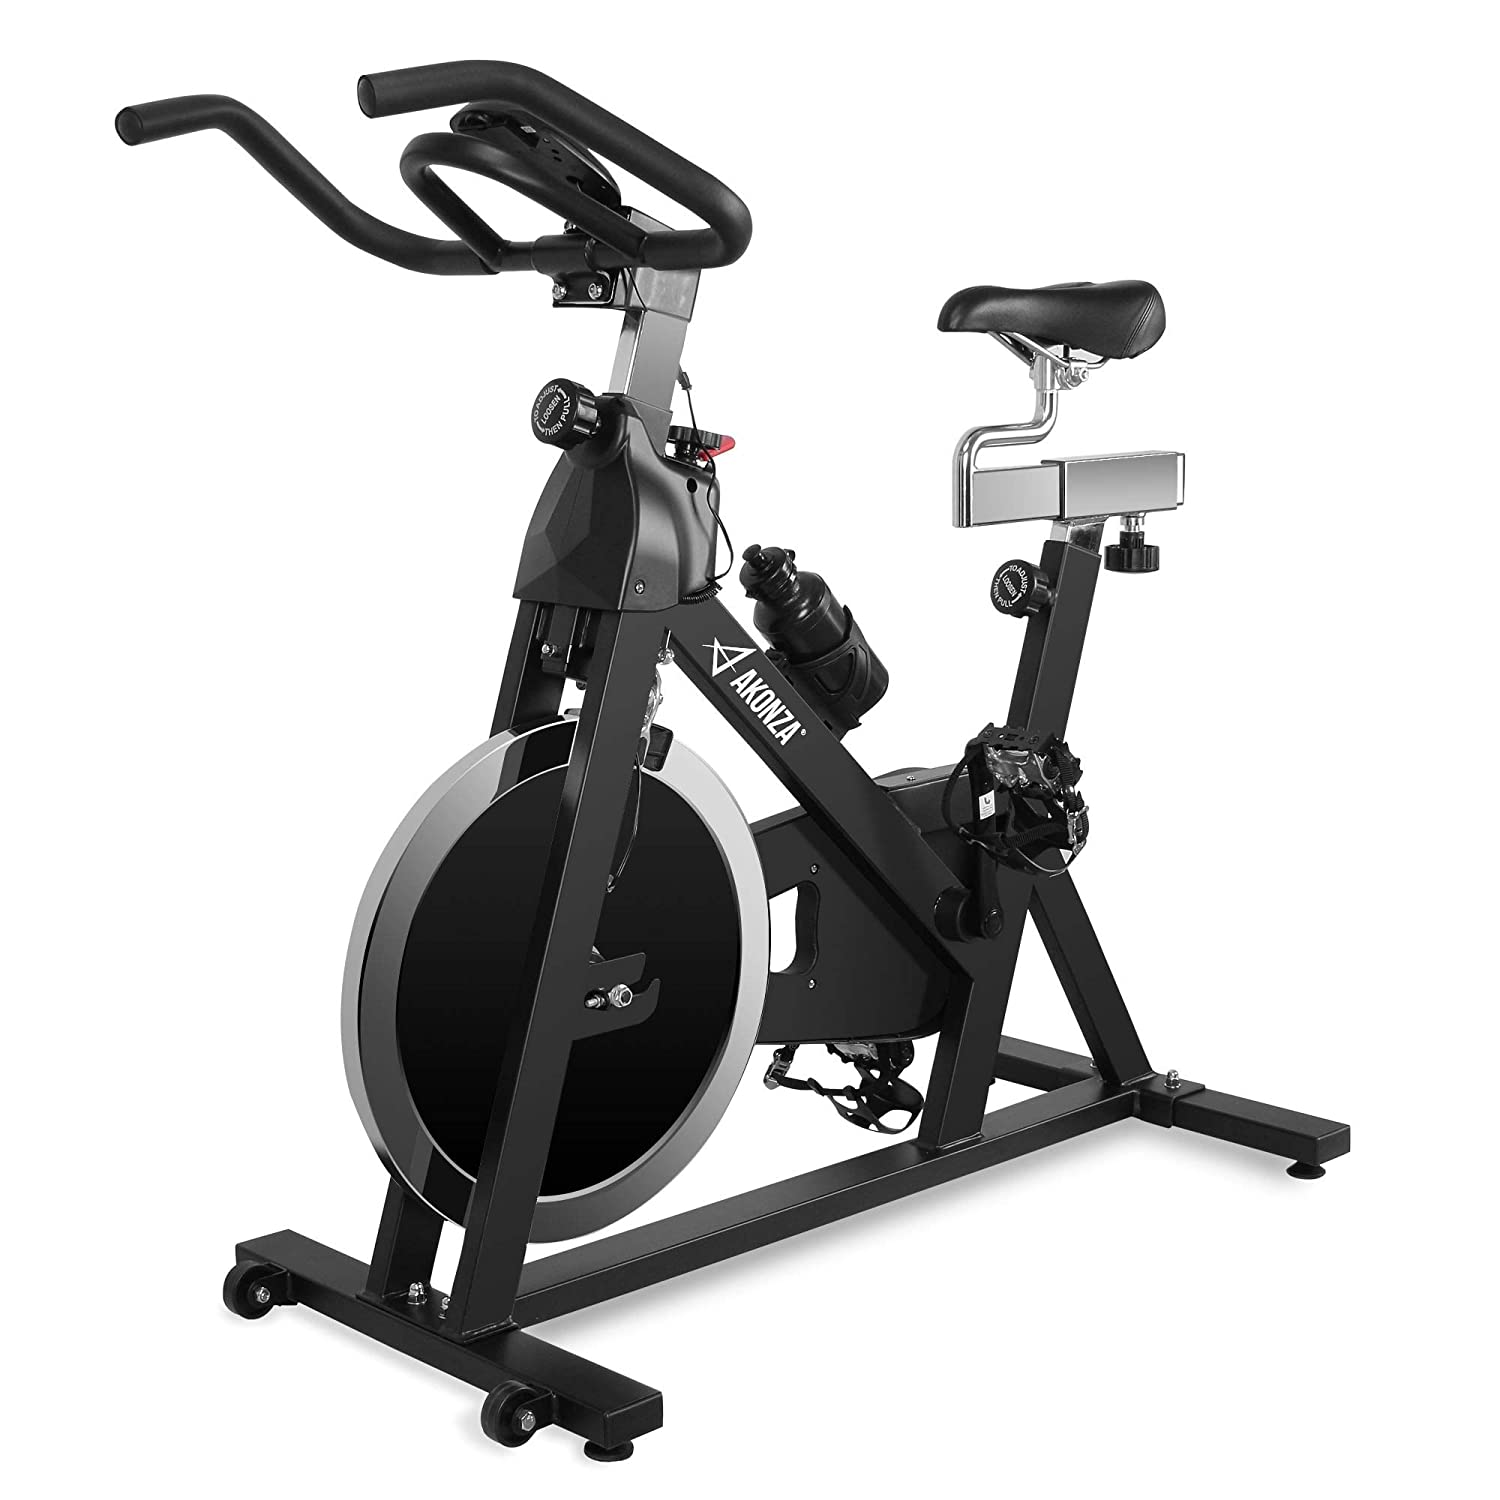 Akonza Indoor Cycling Bike Stationary 40LB Flywheel Exercise with Seat Cushion Workout Adjustable Resistance LCD Monitor